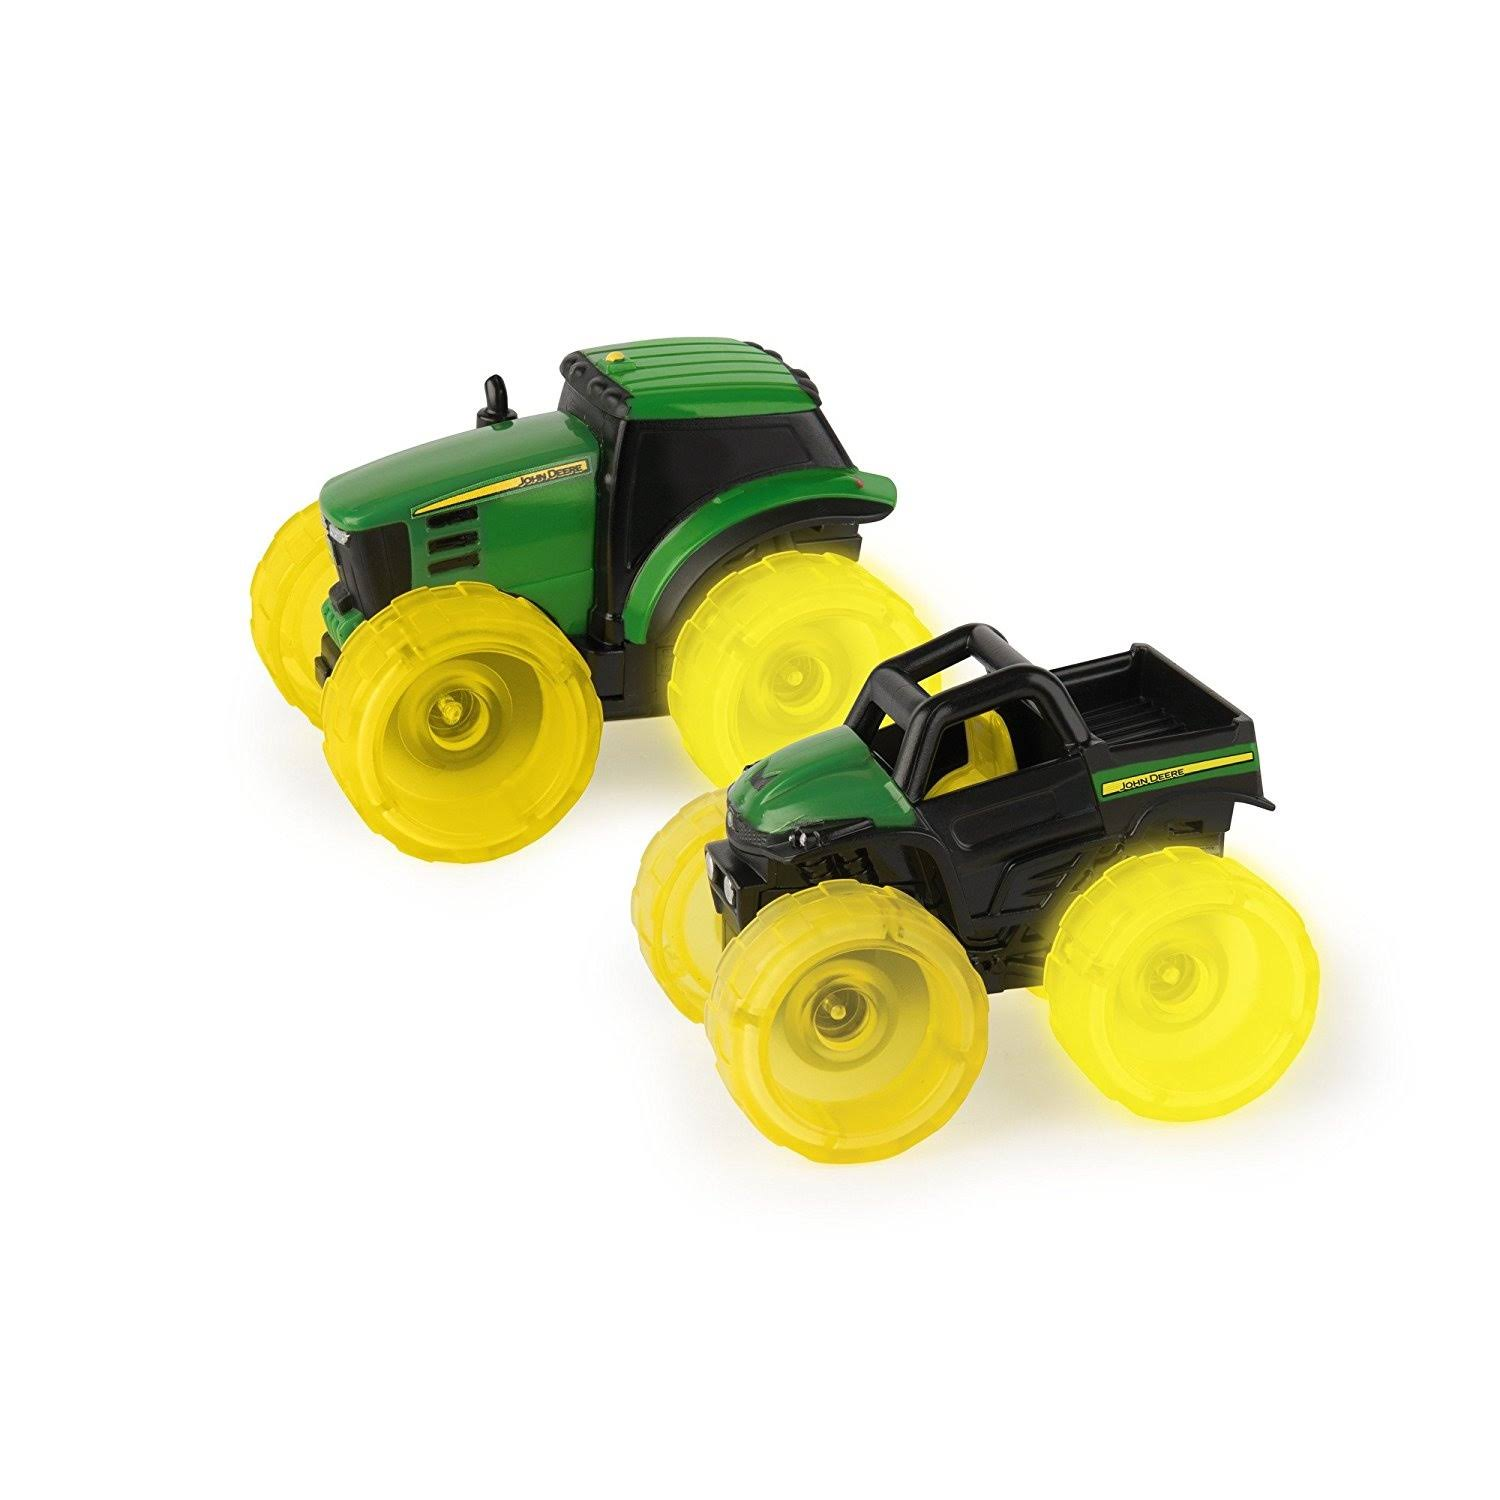 John Deere Monster Treads Lightning Wheels Gator Toy